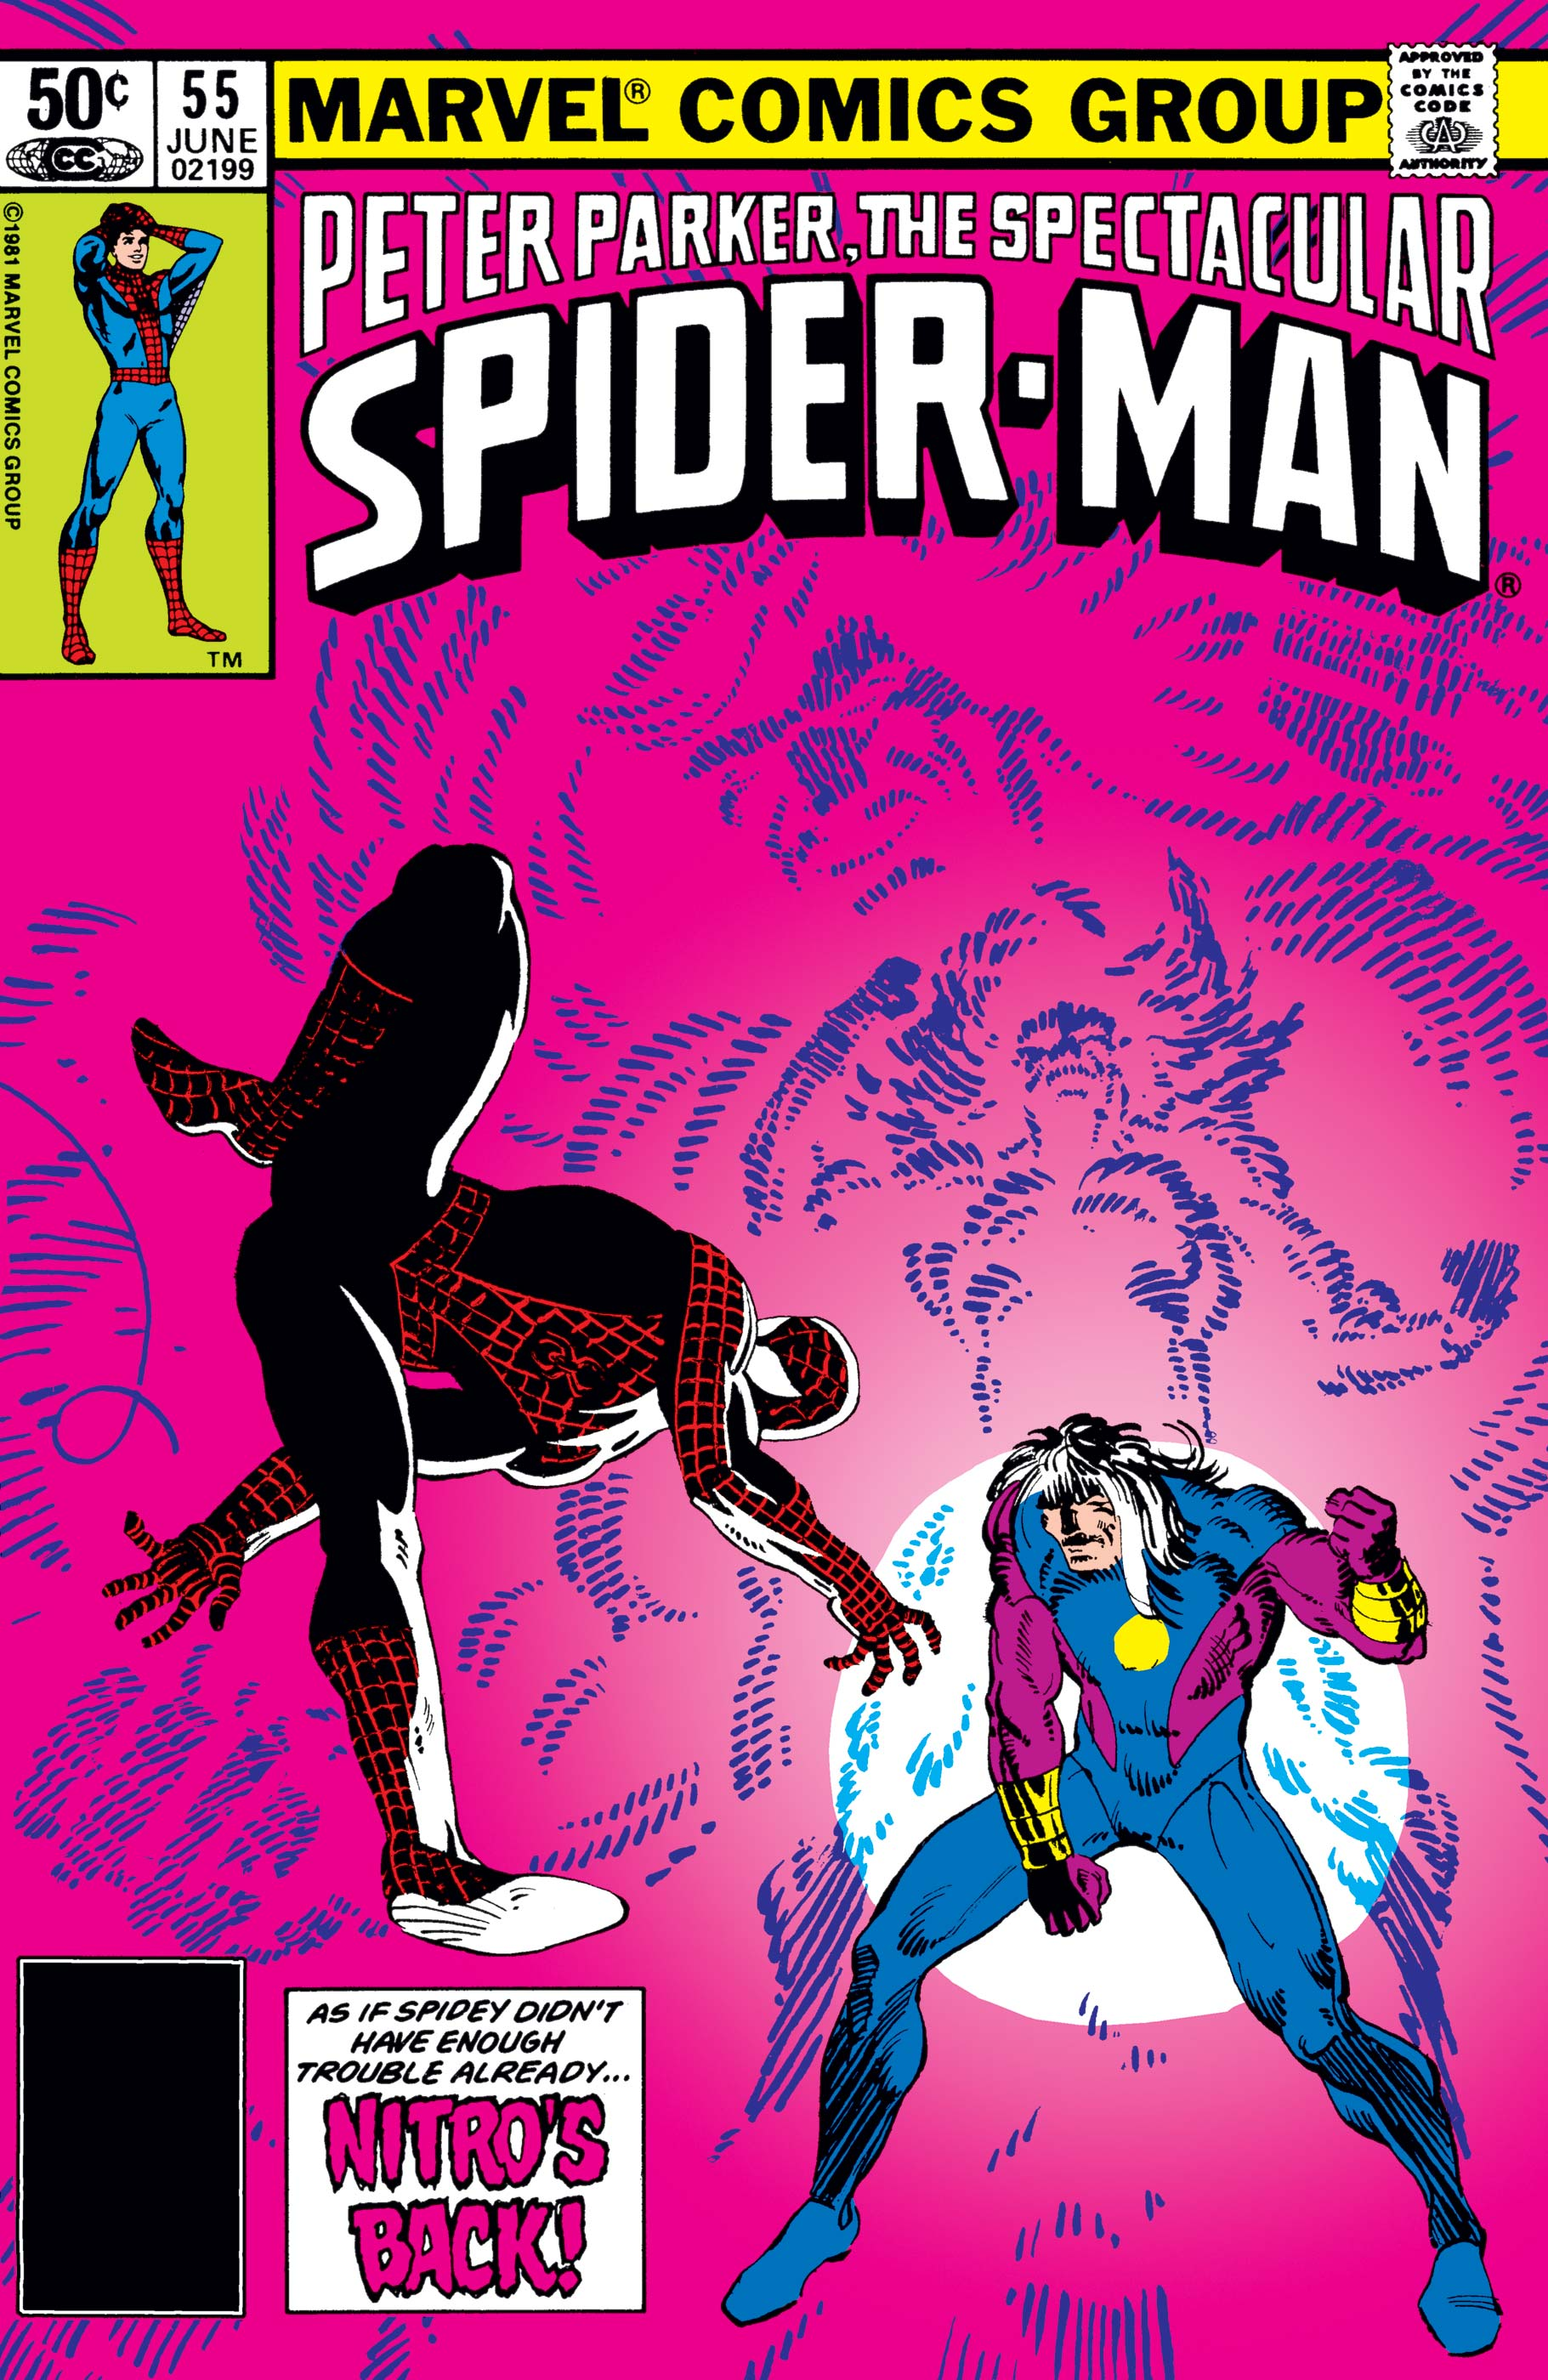 Peter Parker, the Spectacular Spider-Man (1976) #55